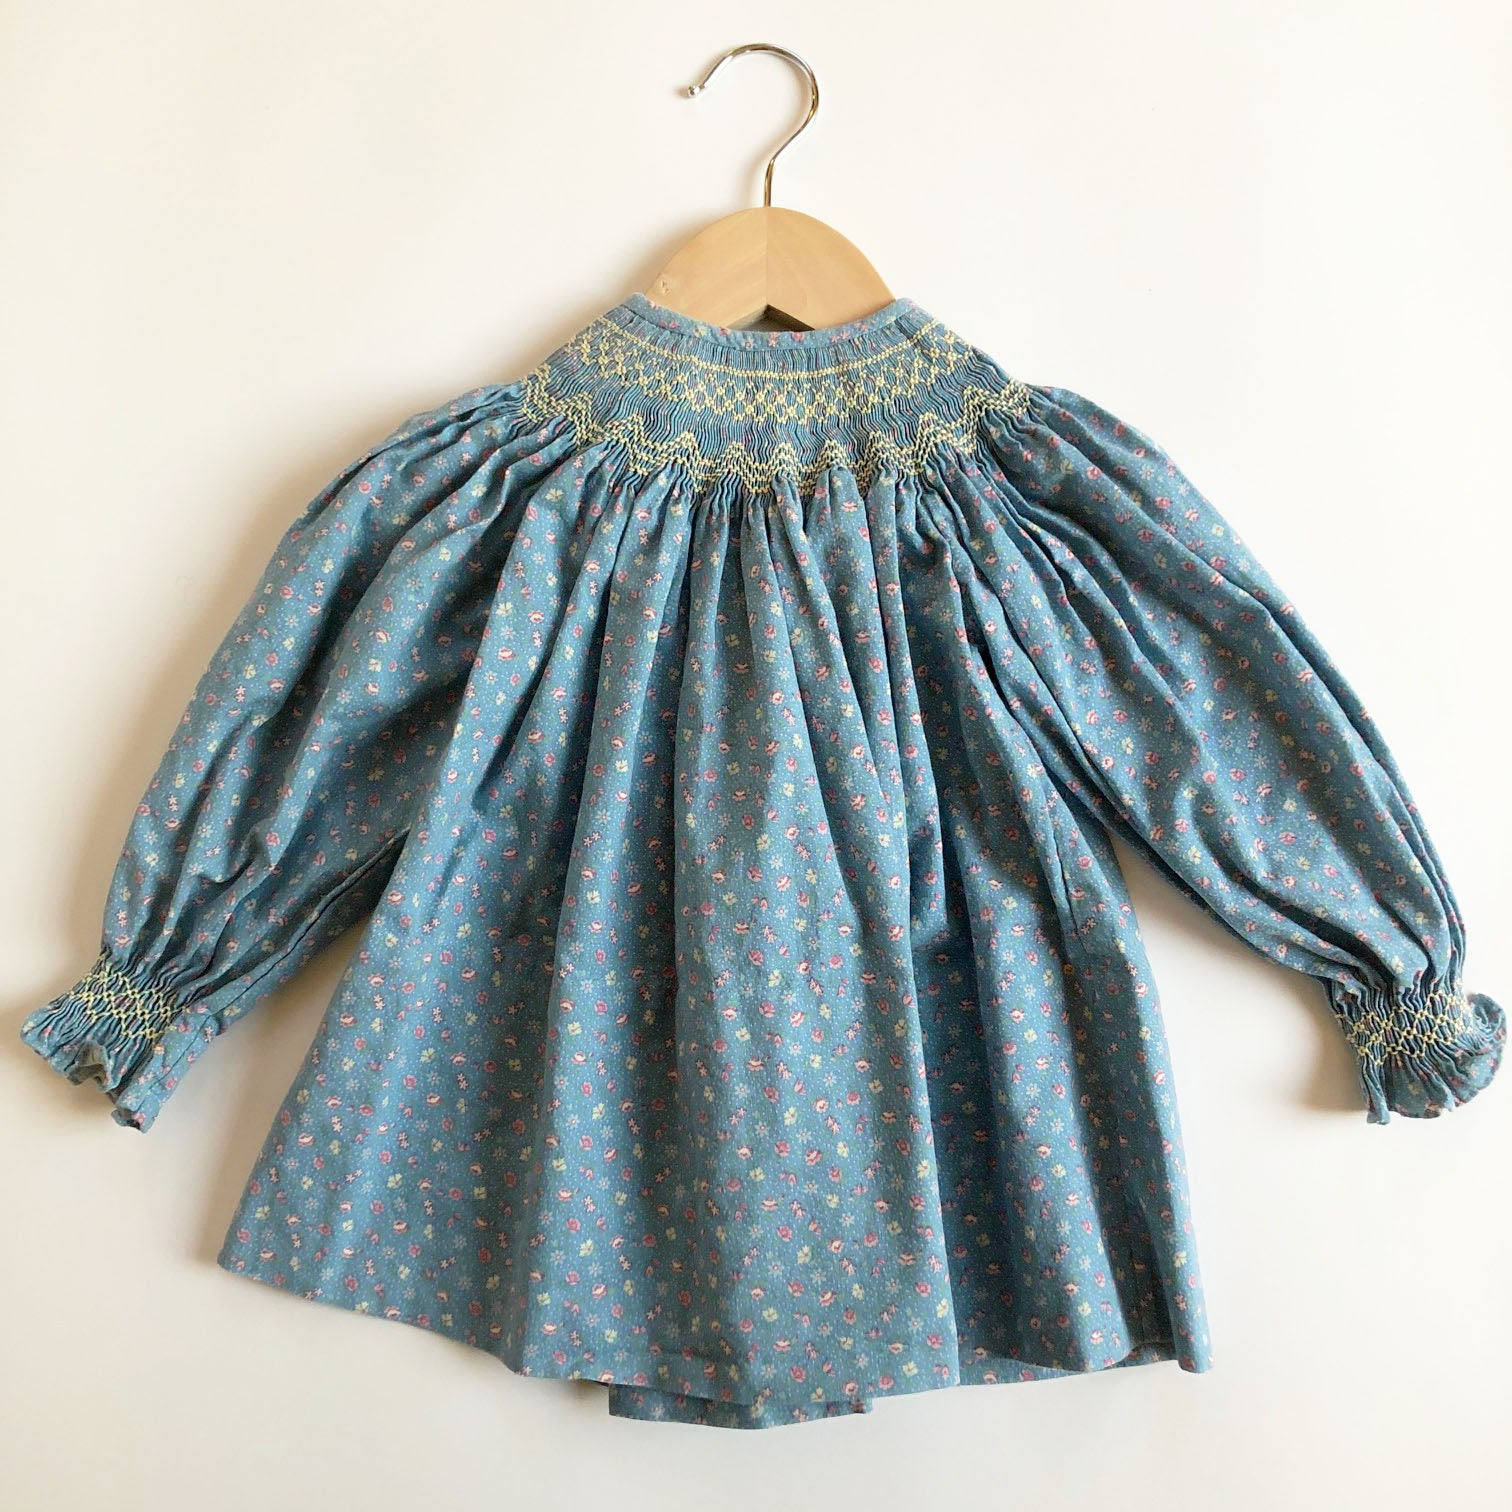 Sweet Little Ditsy Smocked Dress size 12-24 months.